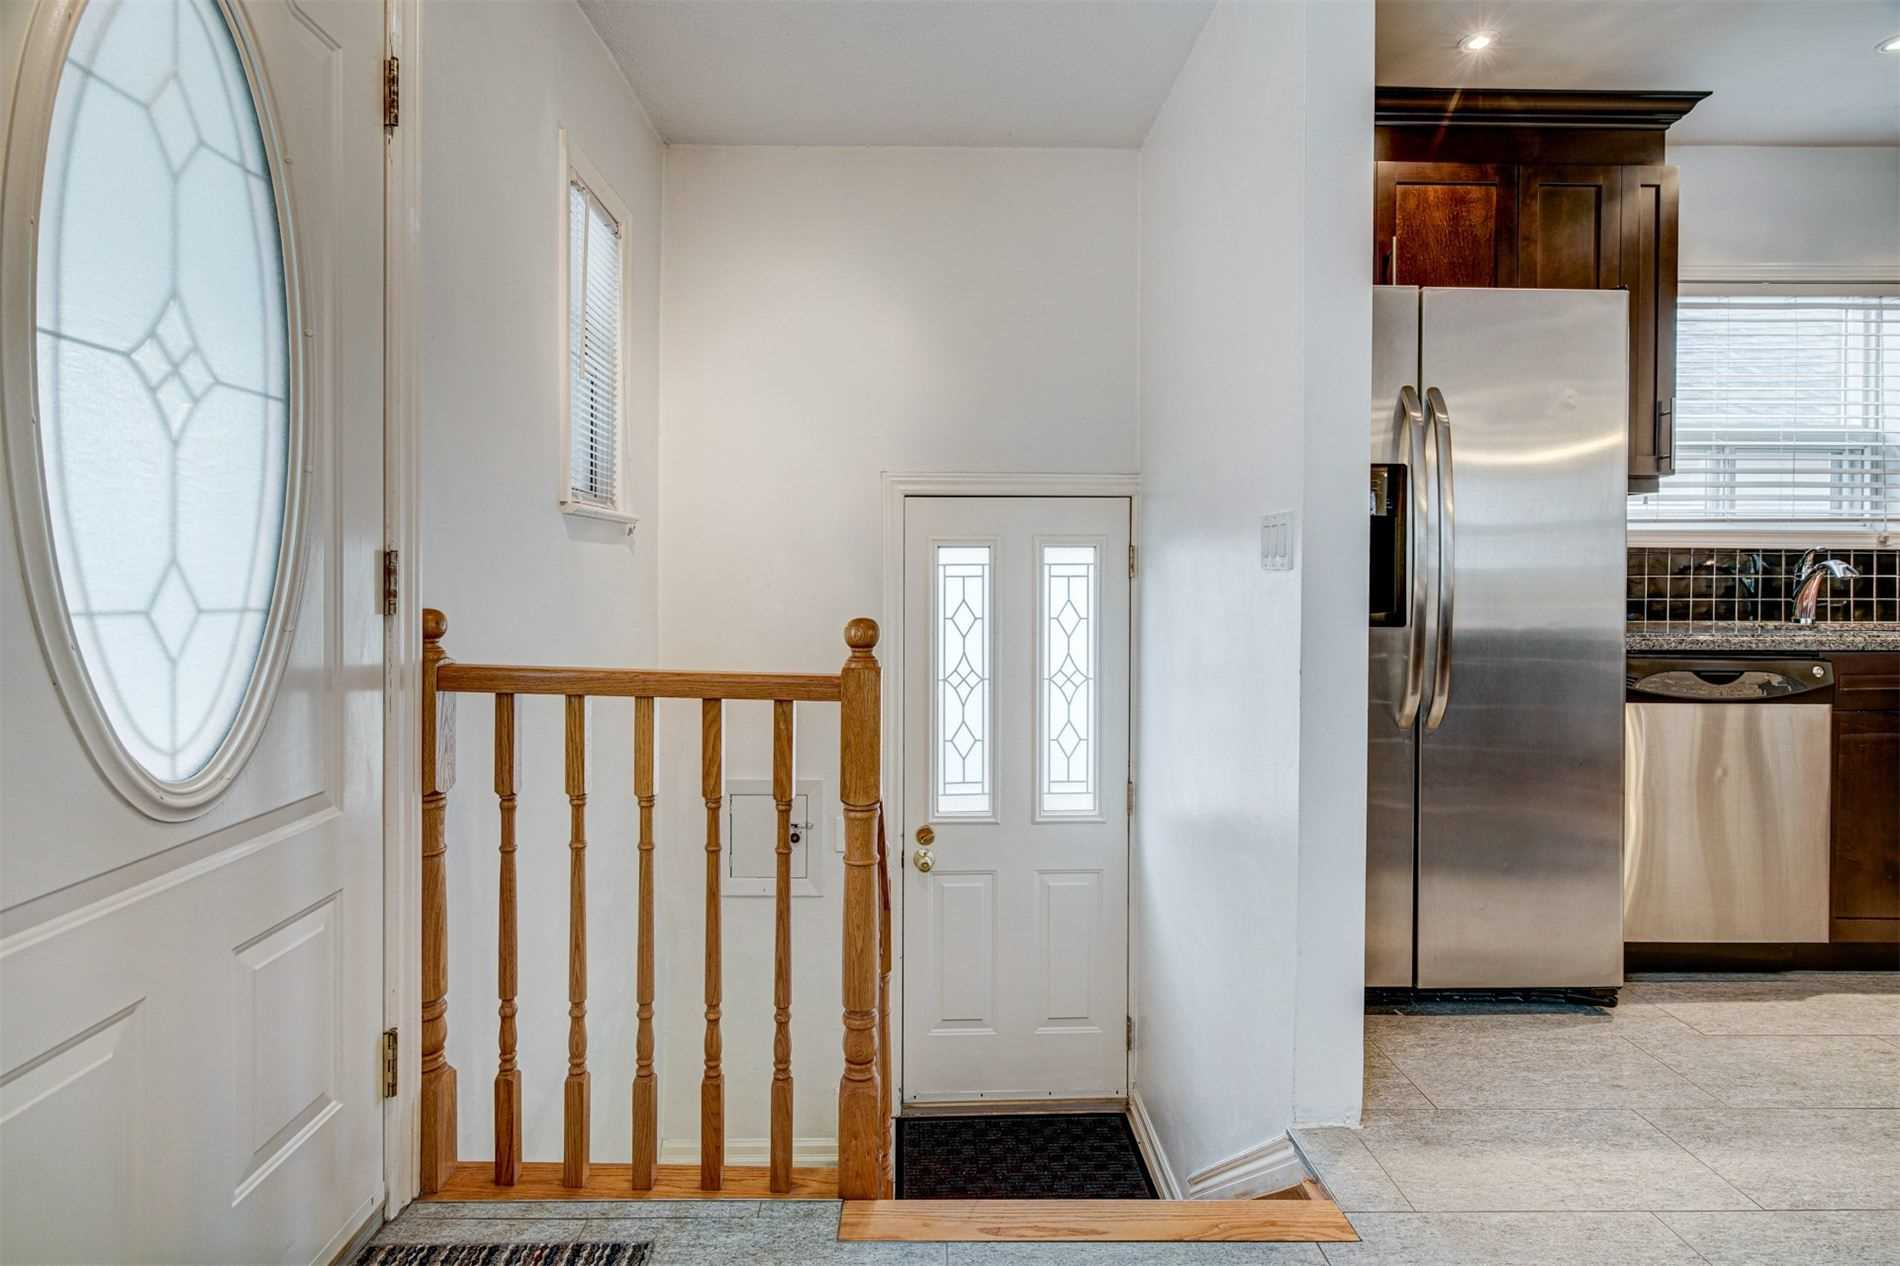 554 Caledonia Rd - Caledonia-Fairbank Detached for sale, 2 Bedrooms (W5305900) - #19